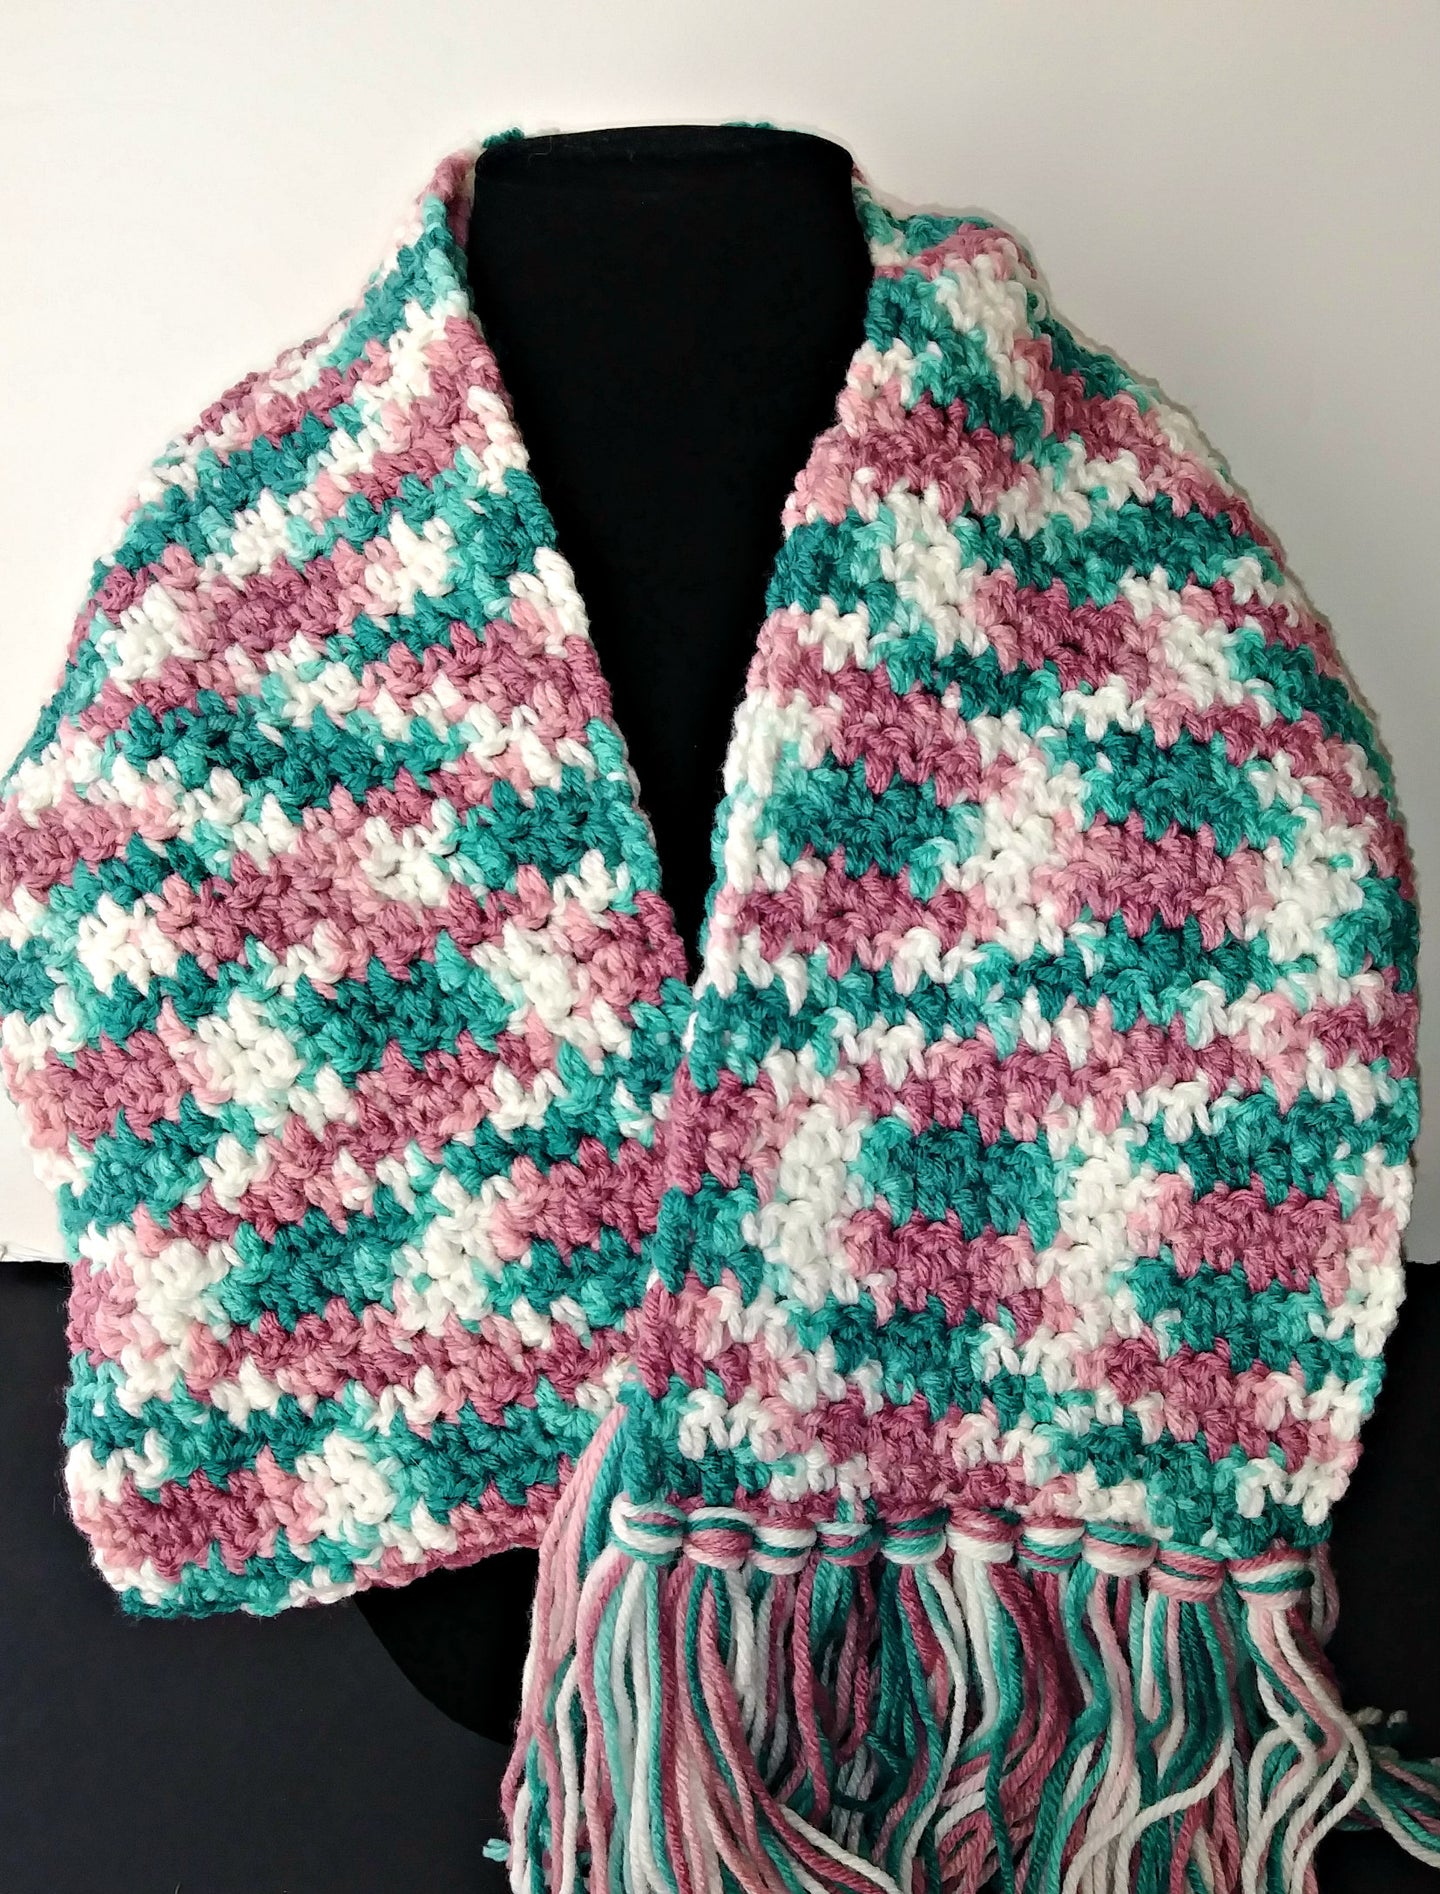 Rambling Rose Pink White Teal Variegated Winter Scarf with Fringe